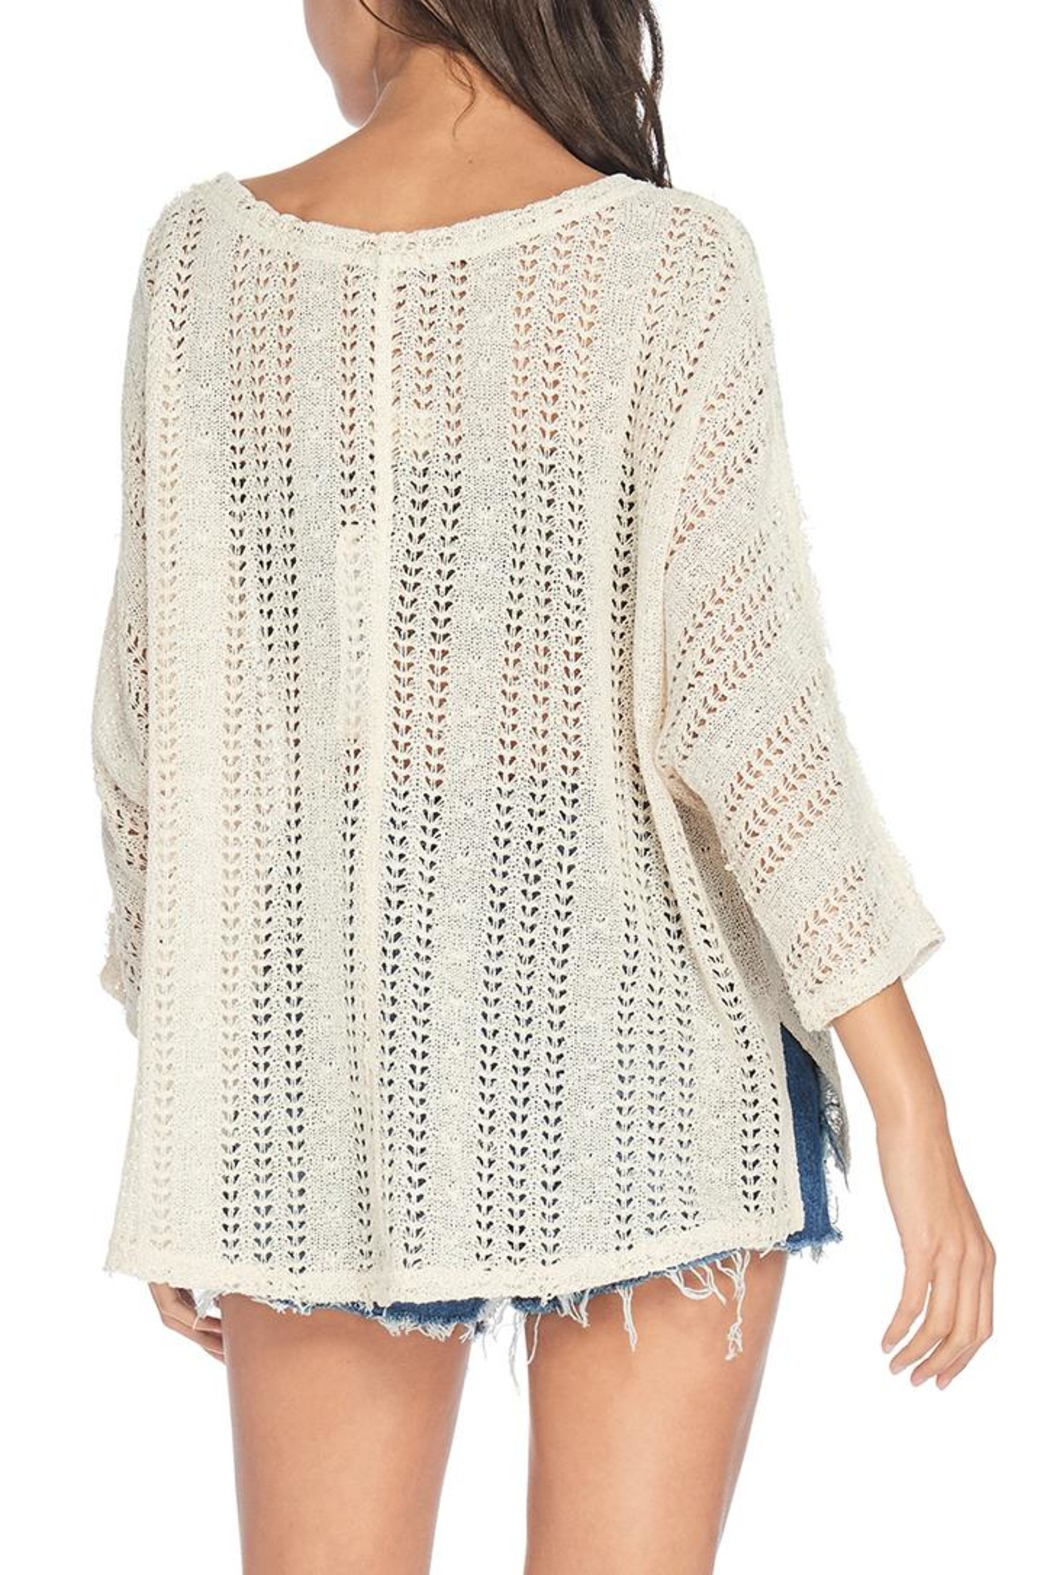 Anama Loose Knit Sweater - Side Cropped Image